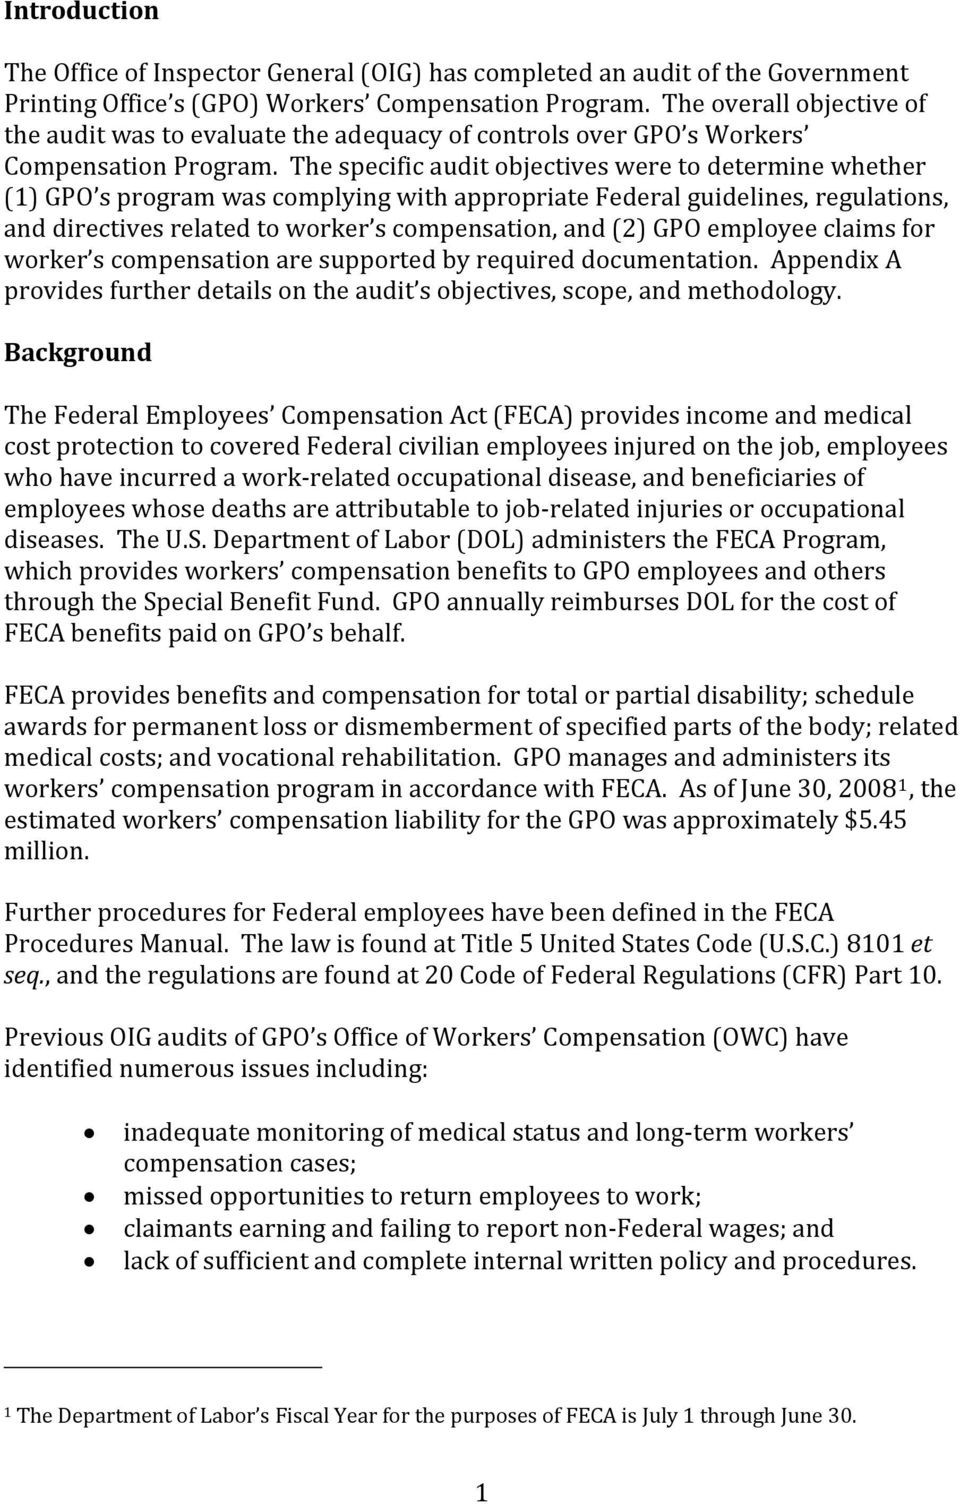 The specific audit objectives were to determine whether (1) GPO s program was complying with appropriate Federal guidelines, regulations, and directives related to worker s compensation, and (2) GPO